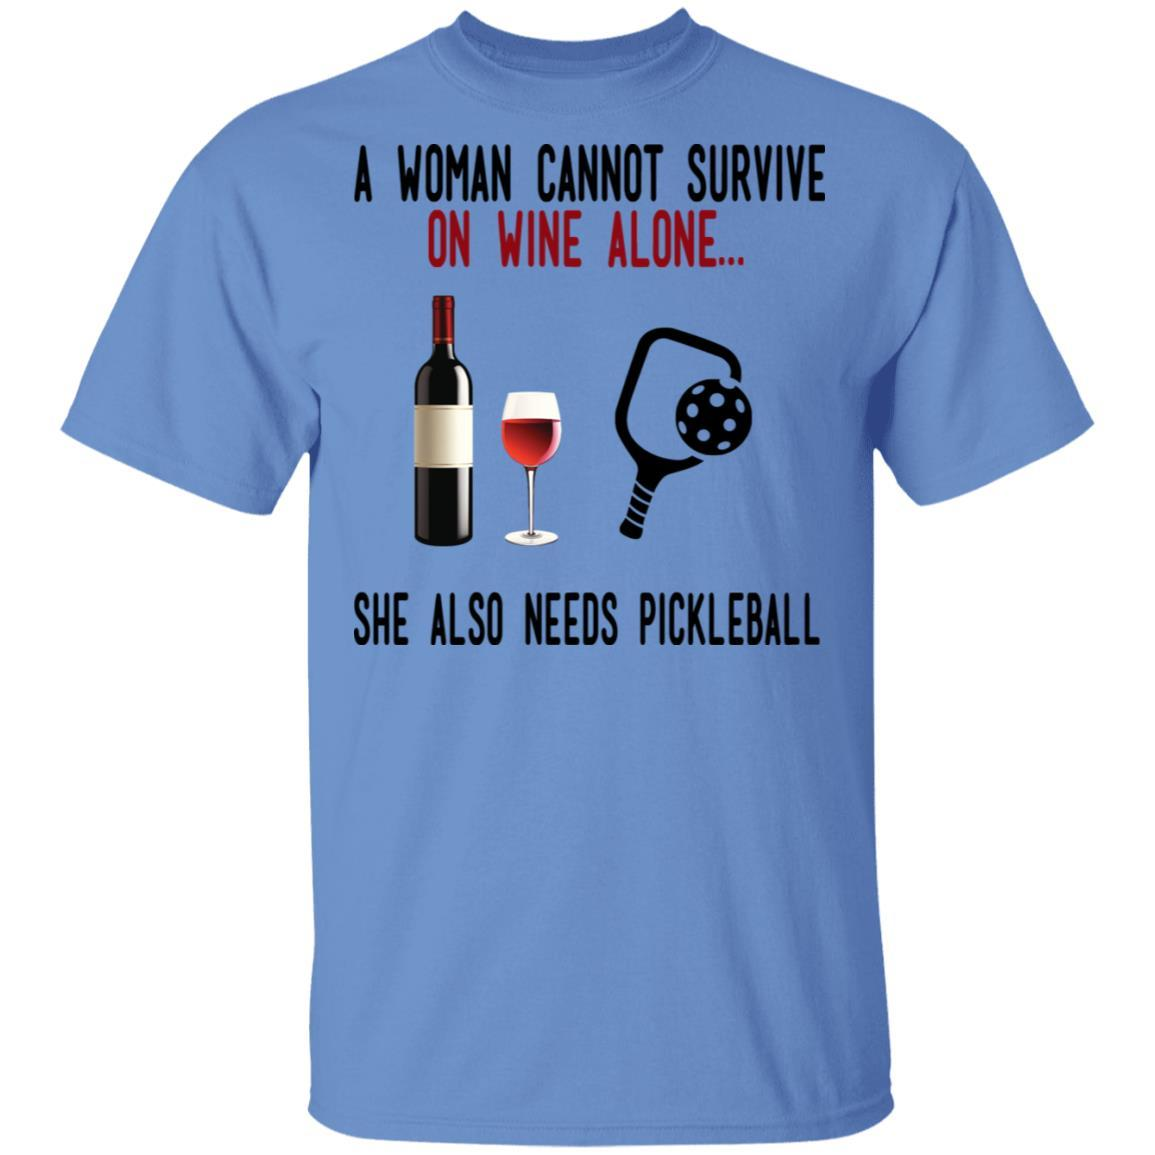 A Woman Cannot Survive On Wine Alone She Also Needs Pickleball T-Shirts, Hoodies 1049-9955-86569608-48160 - Tee Ript